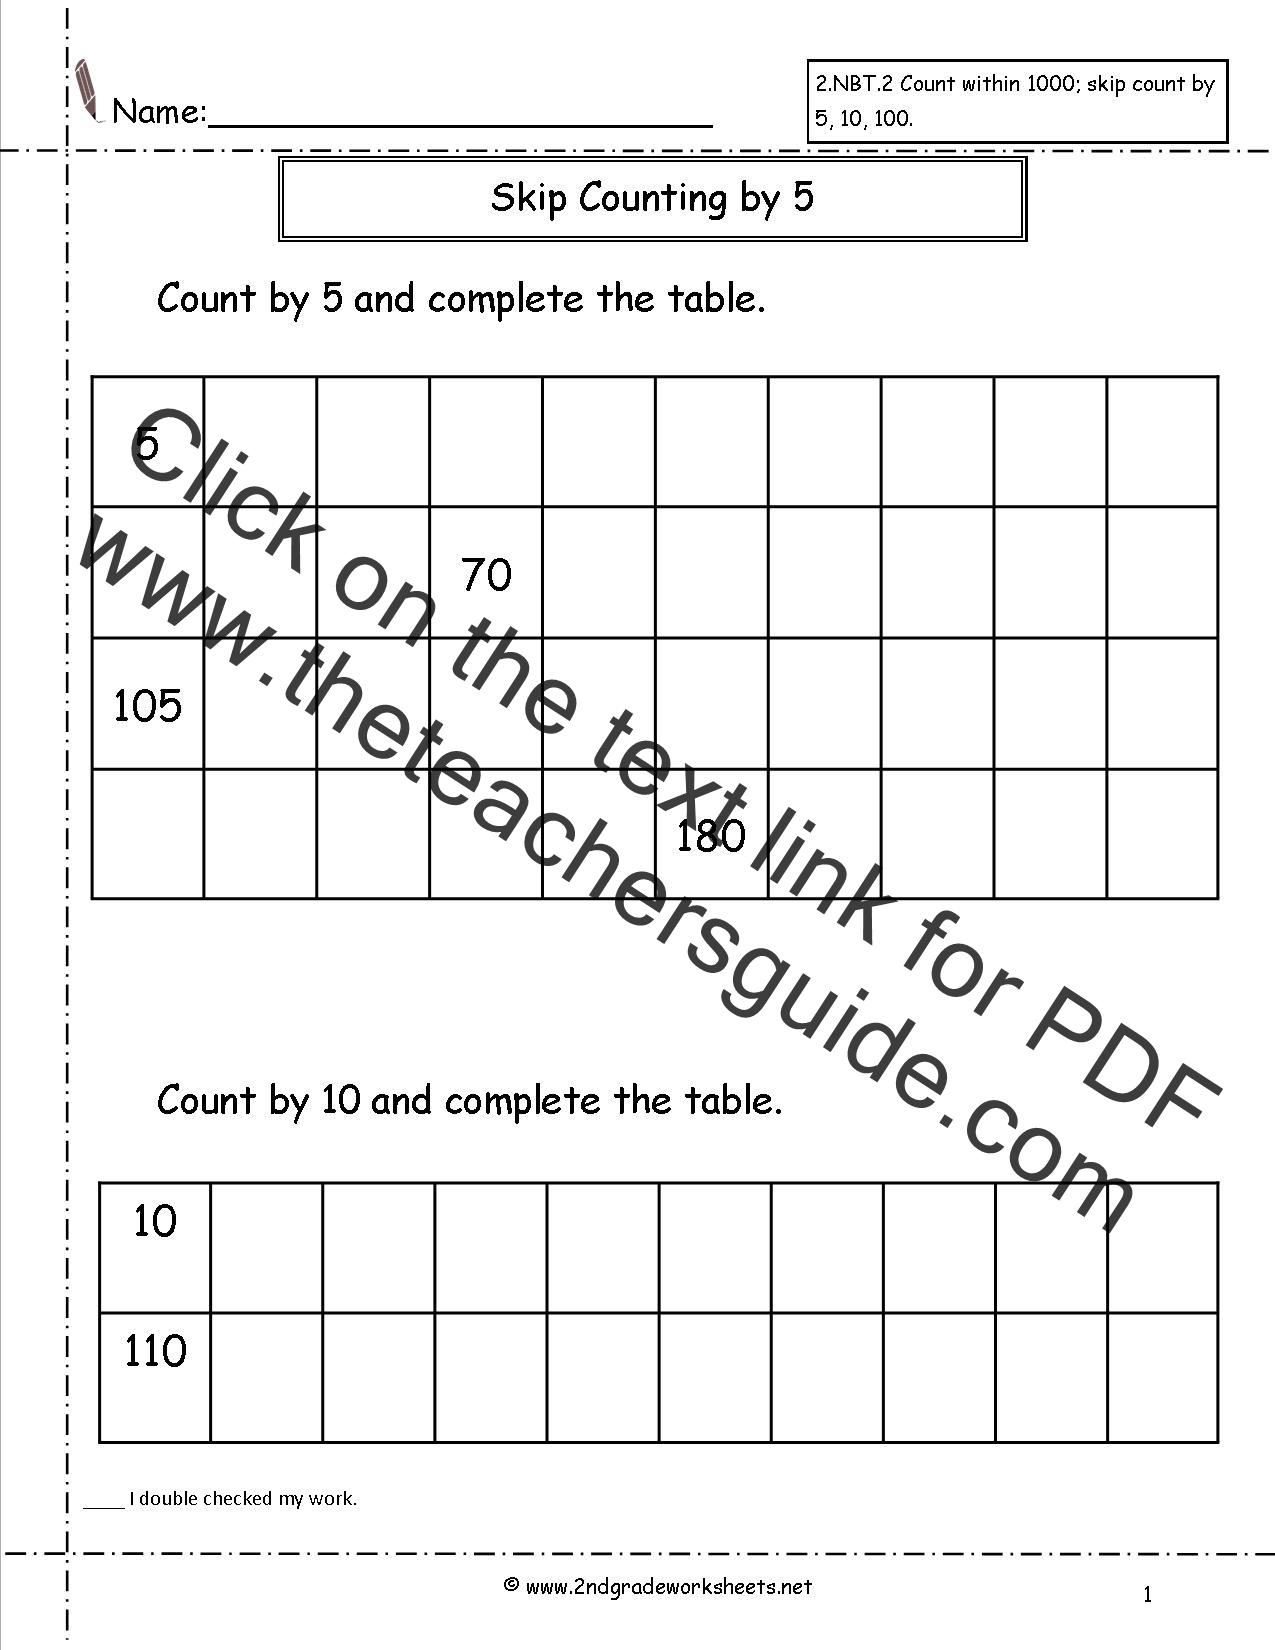 Worksheet Skip Counting Free Worksheets free skip counting worksheets count by 5 and 10